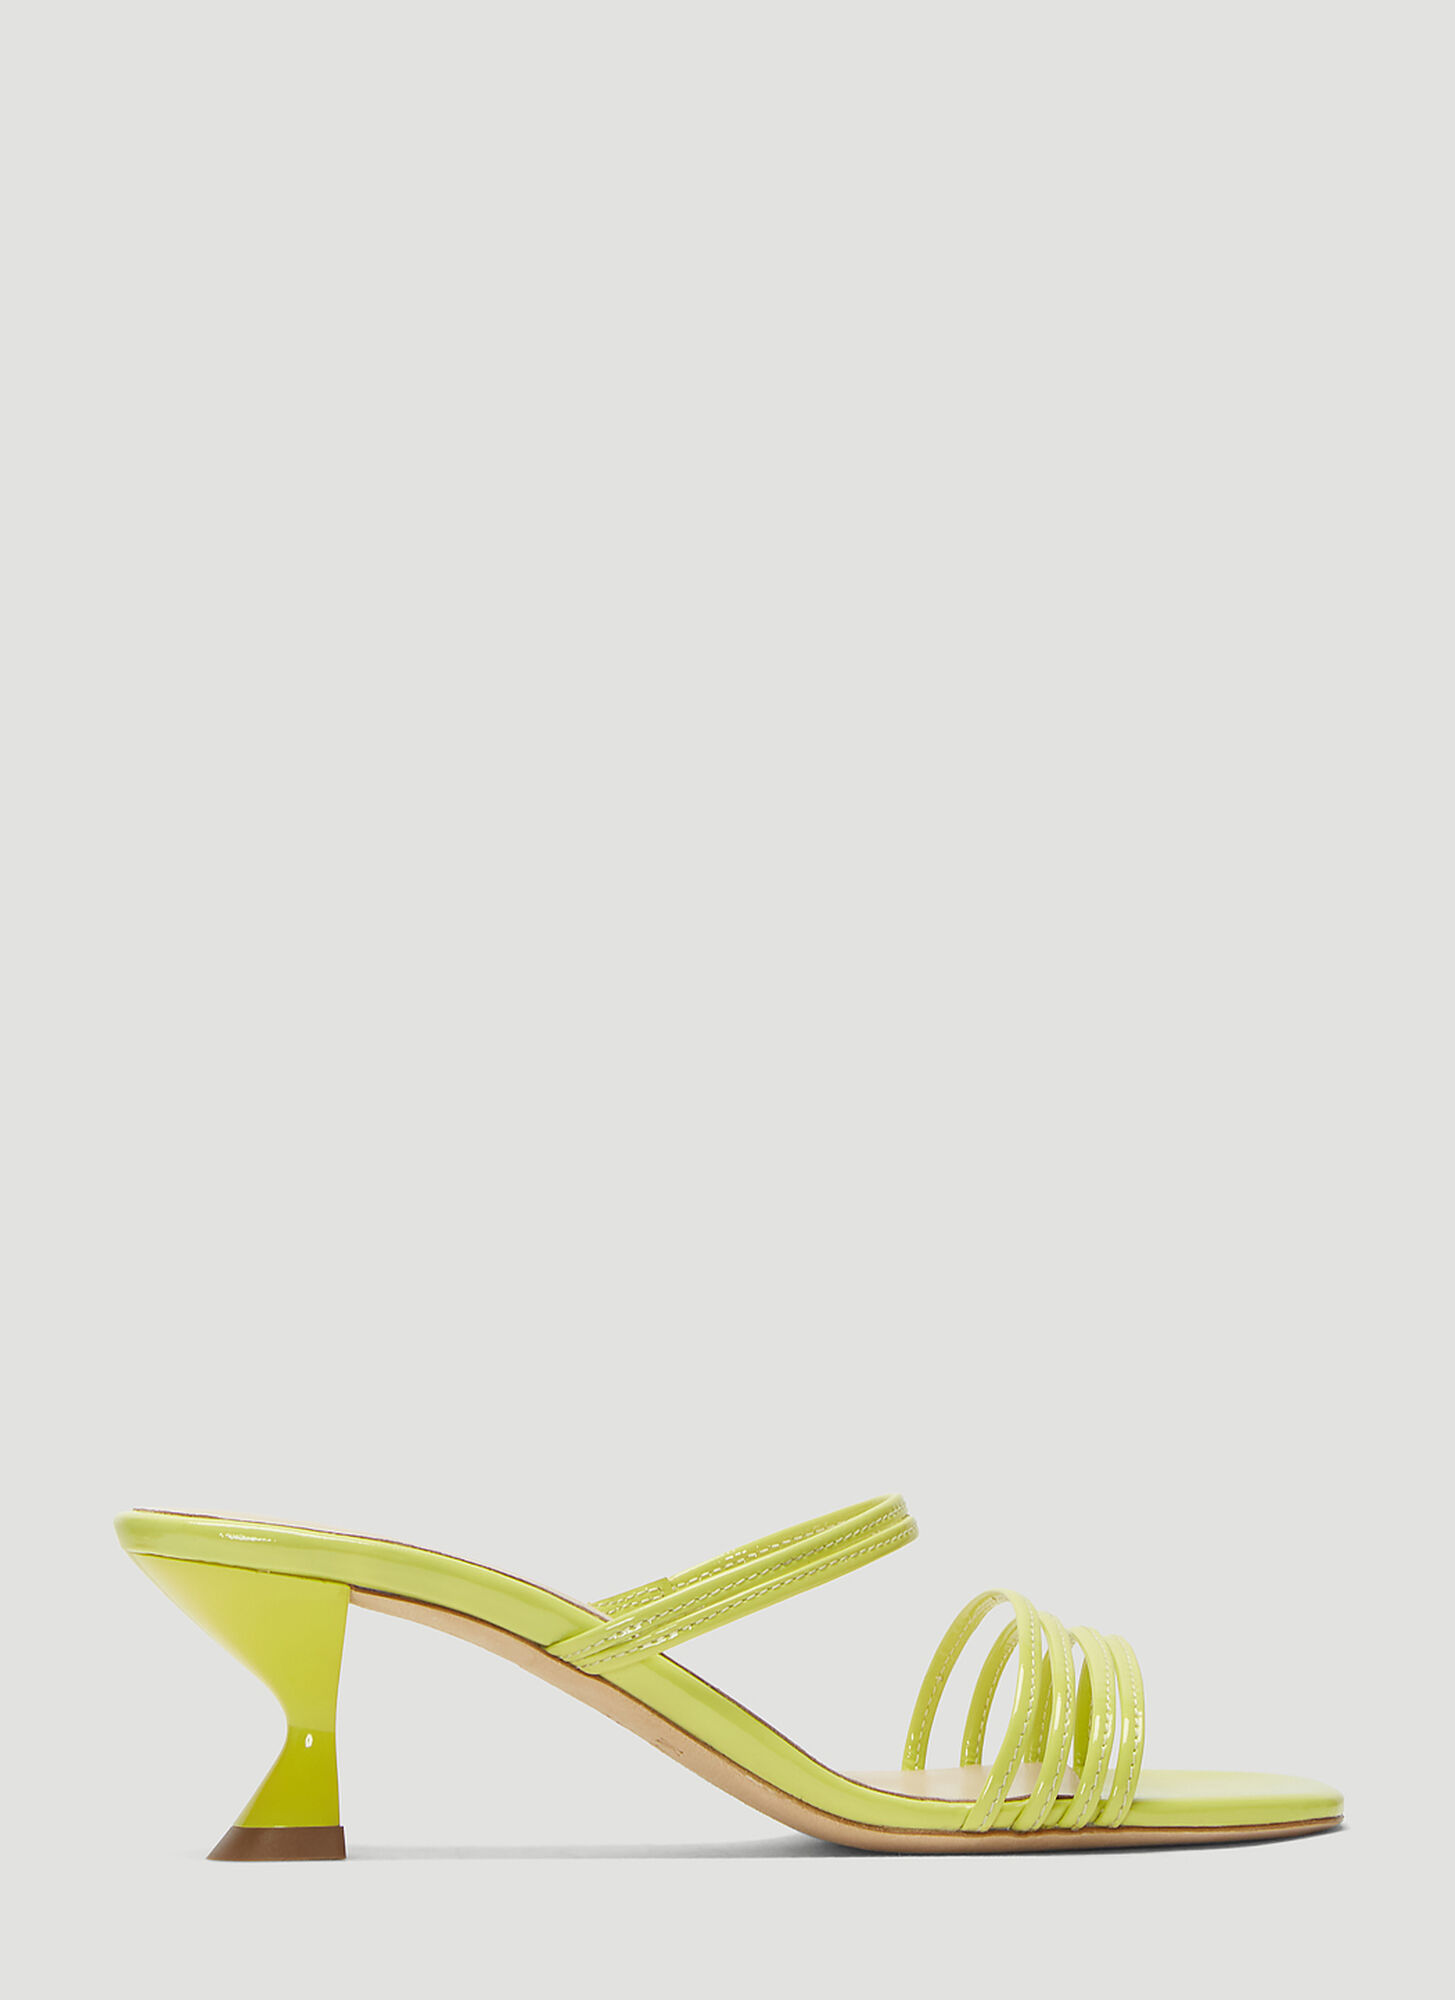 Kalda Simon Sandals in Green